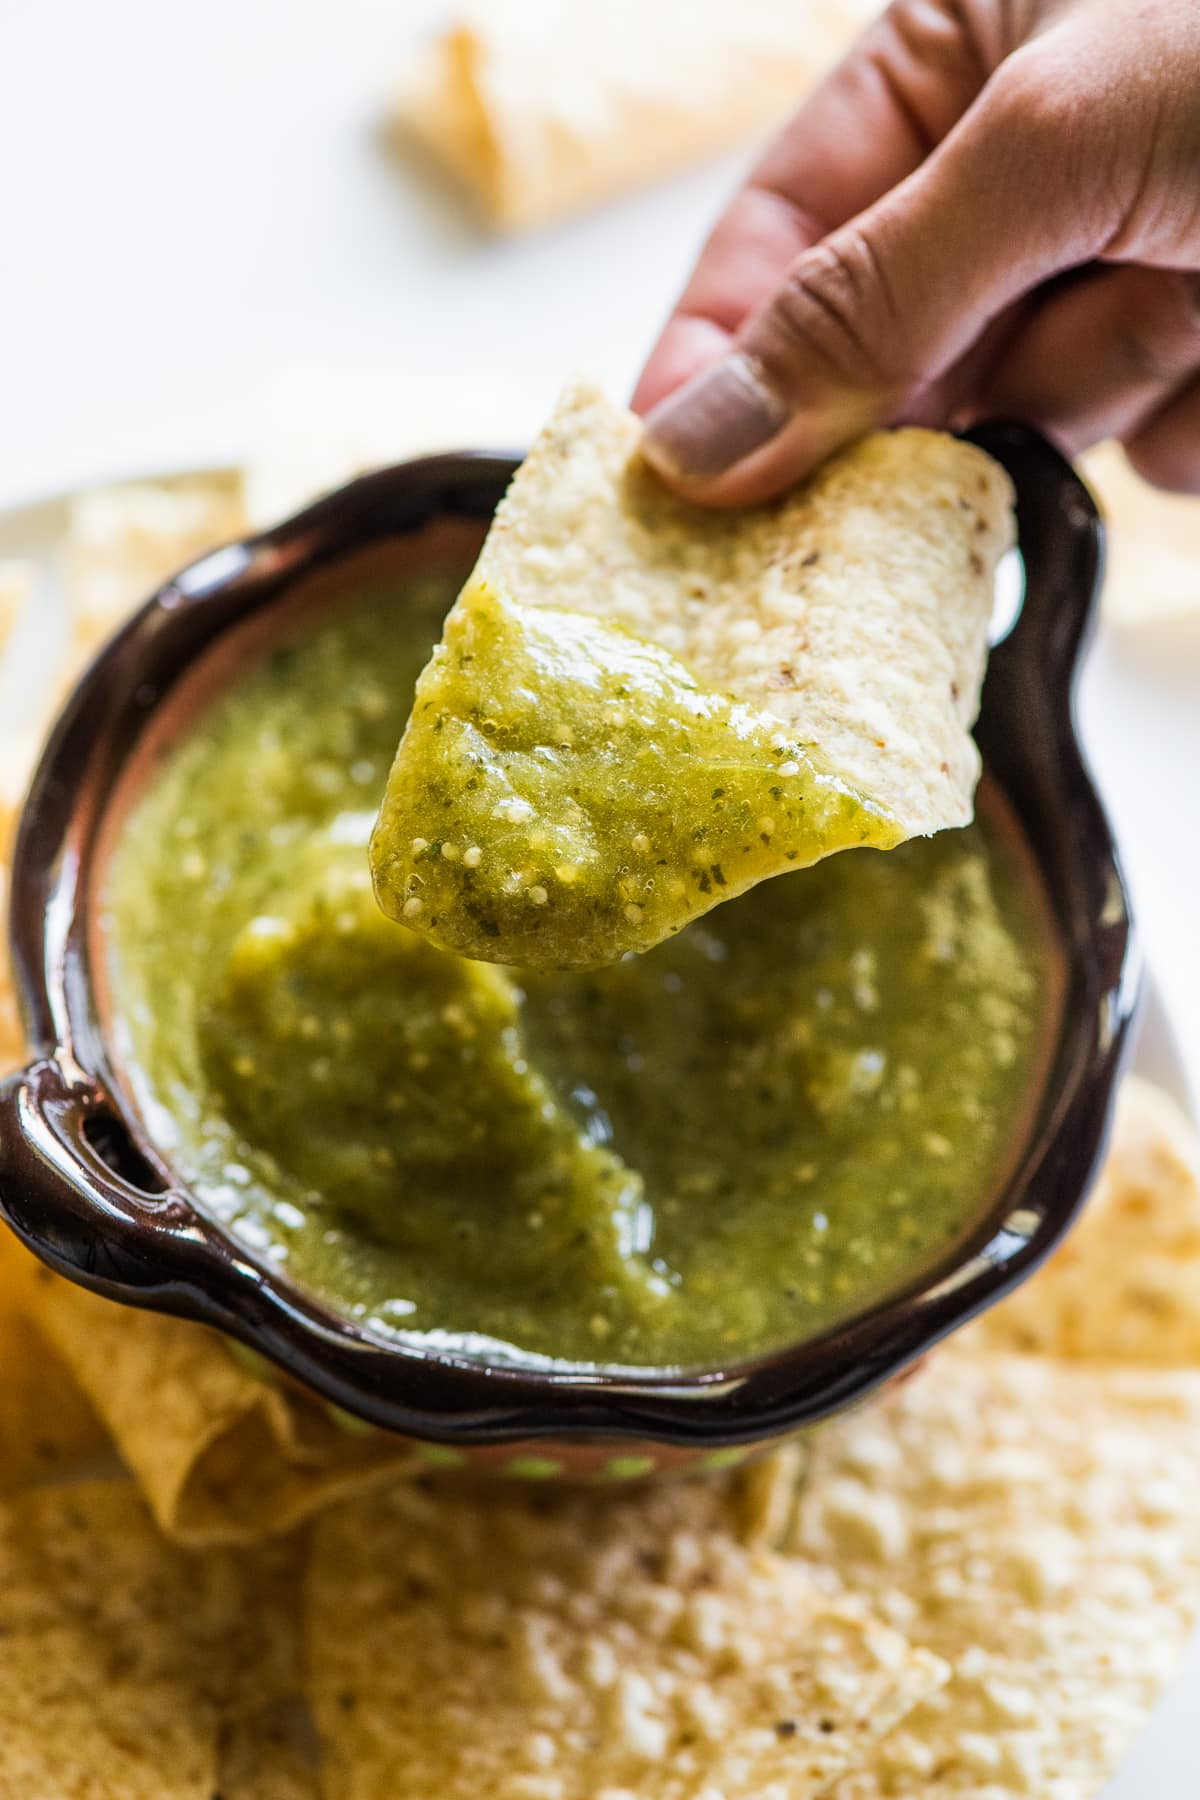 Salsa verde on a tortilla chip.